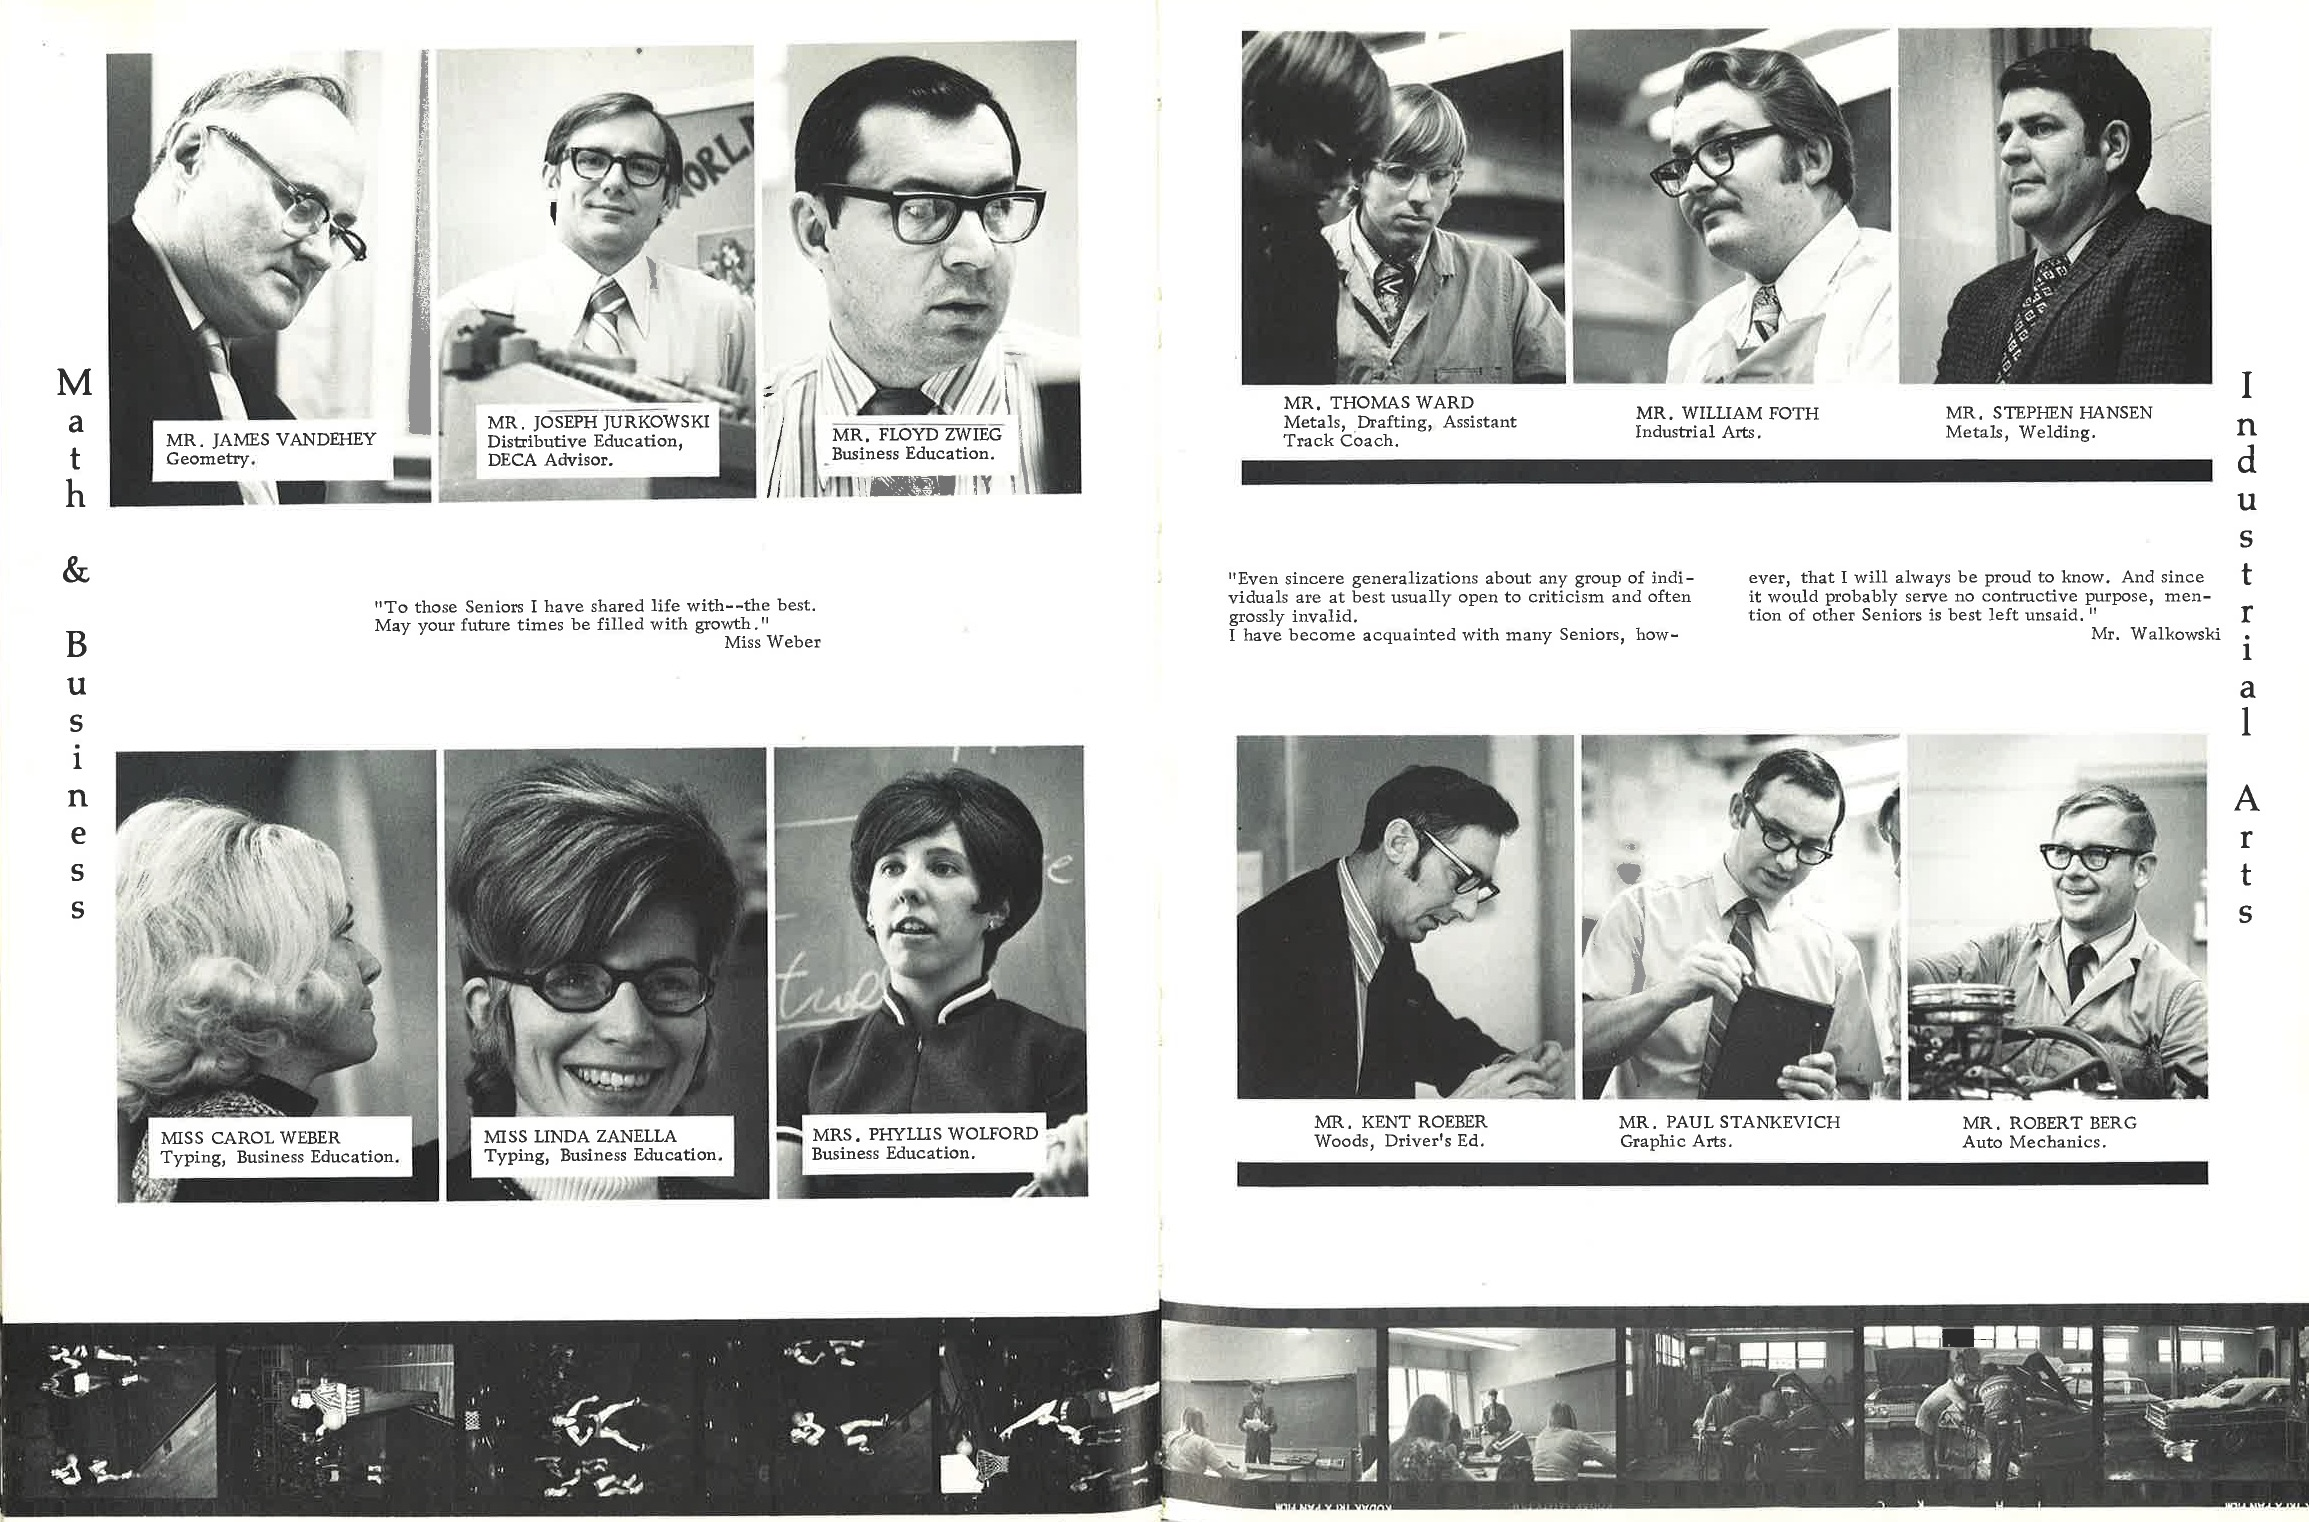 1972_Yearbook_30-31.jpg